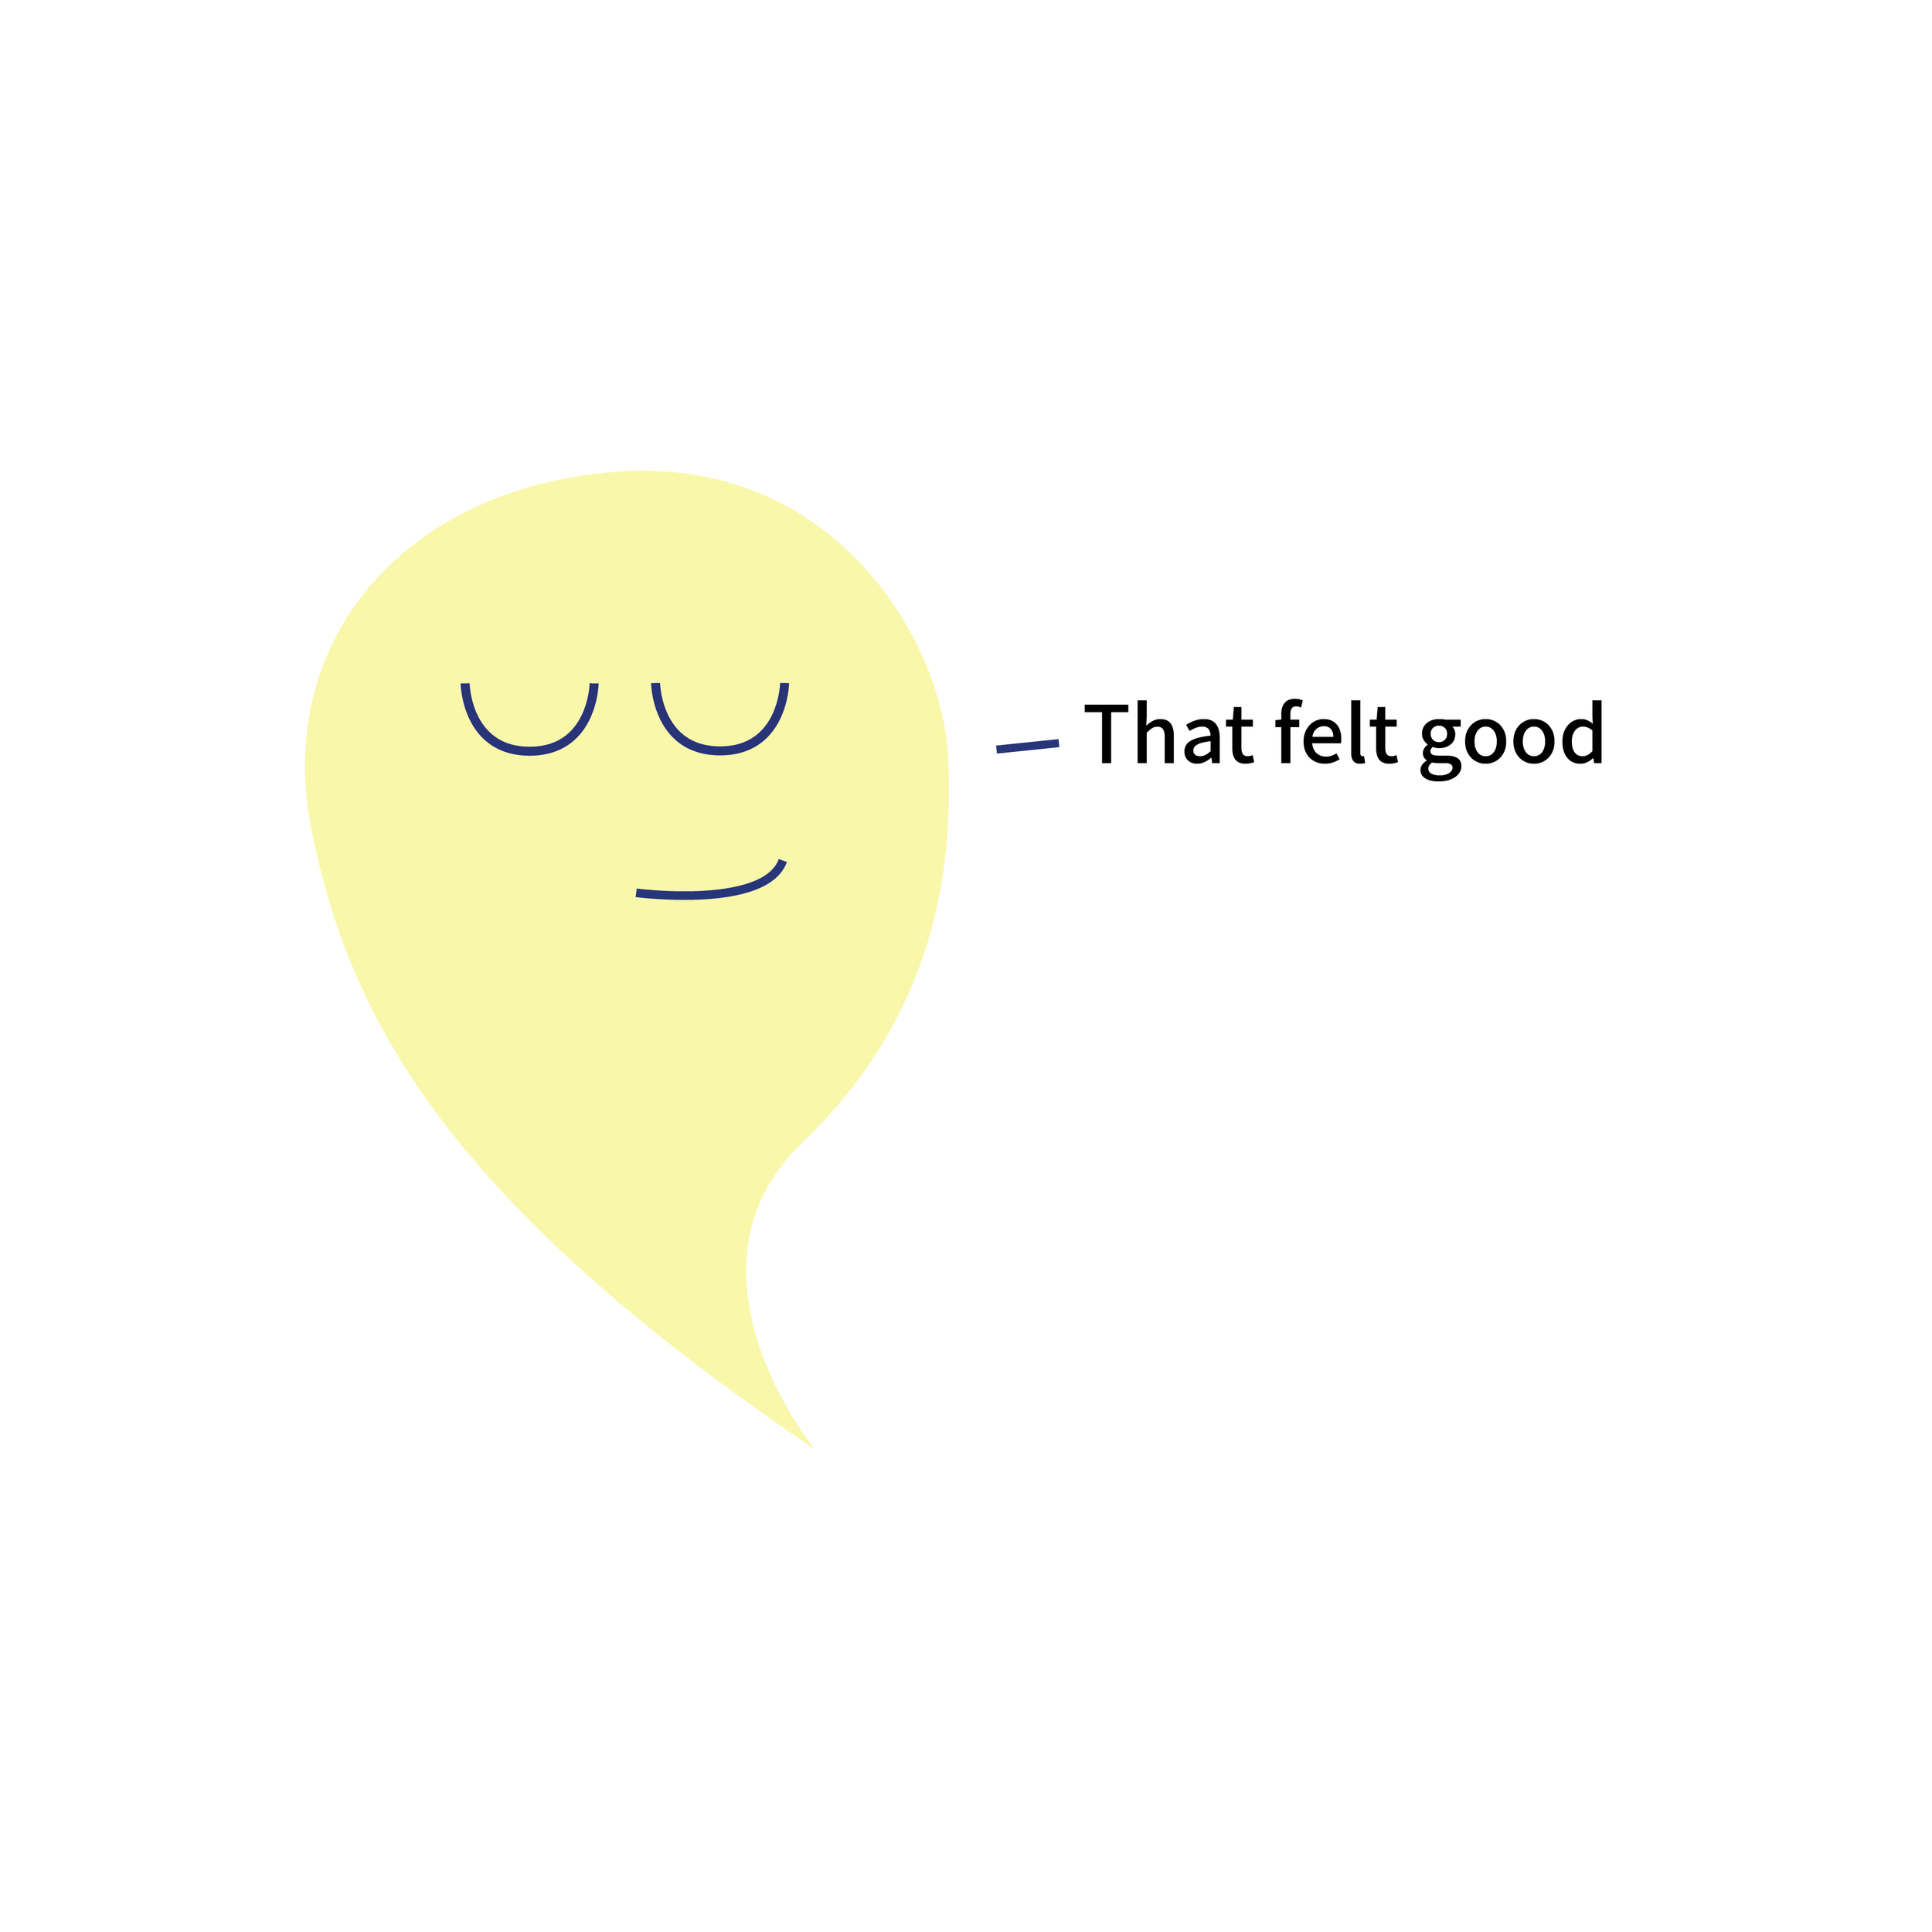 2019.07.11 2 2.png